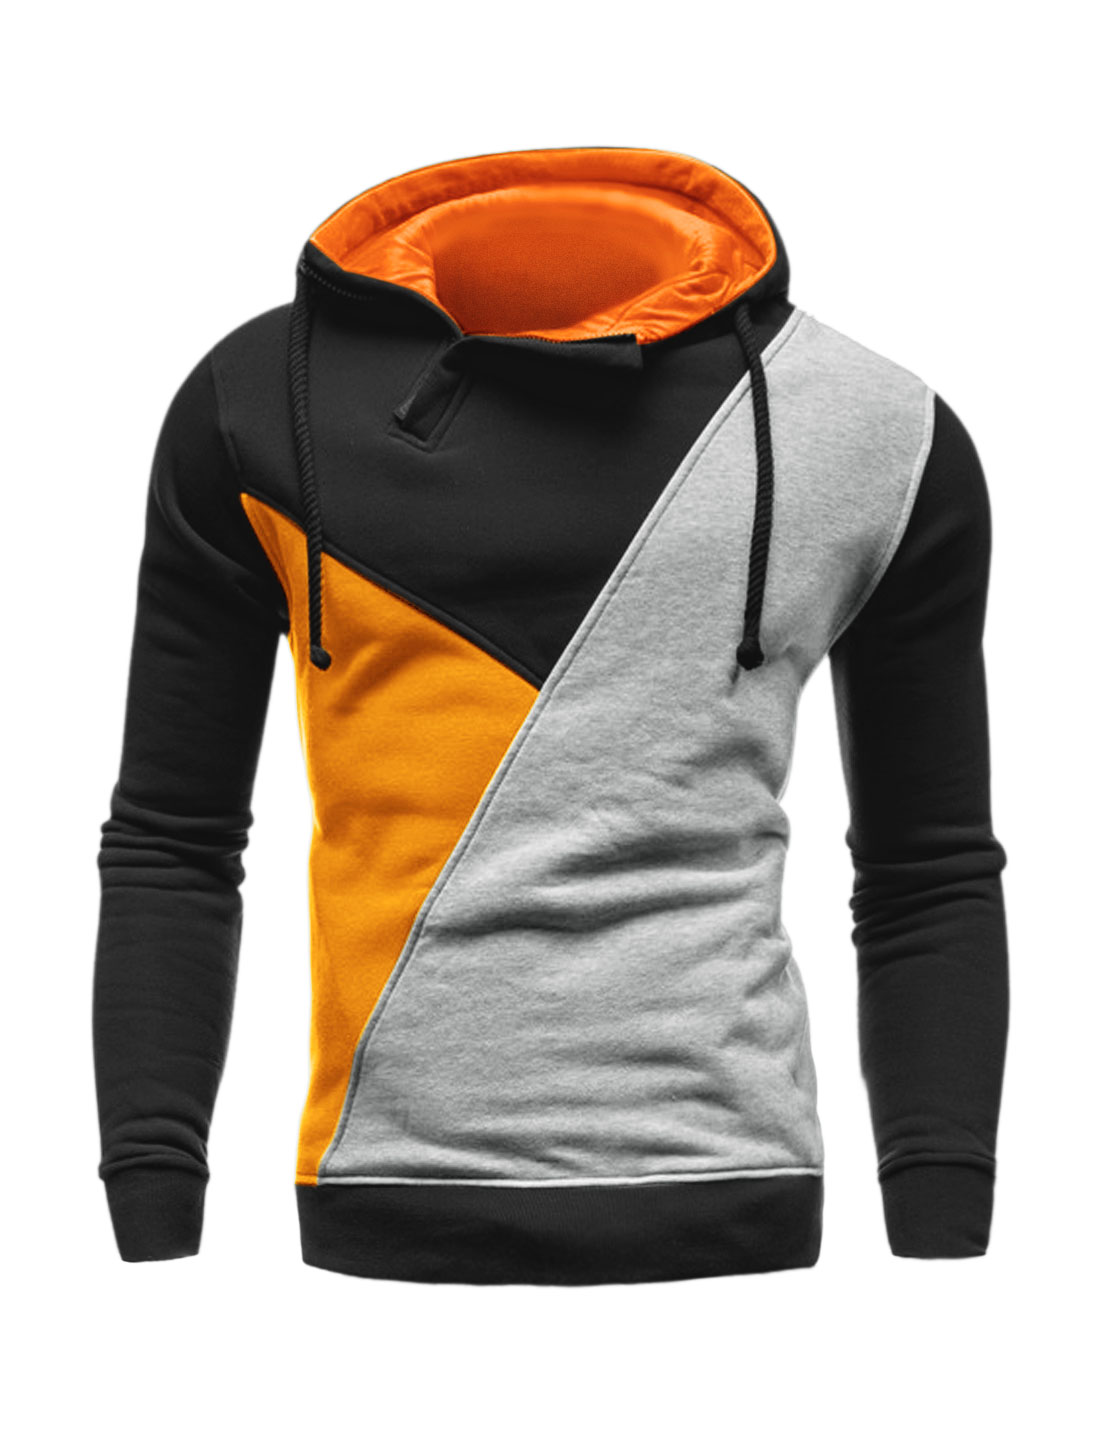 Men 1/2 Zip Long Sleeves Color Block Drawstring Hoodie Orange M